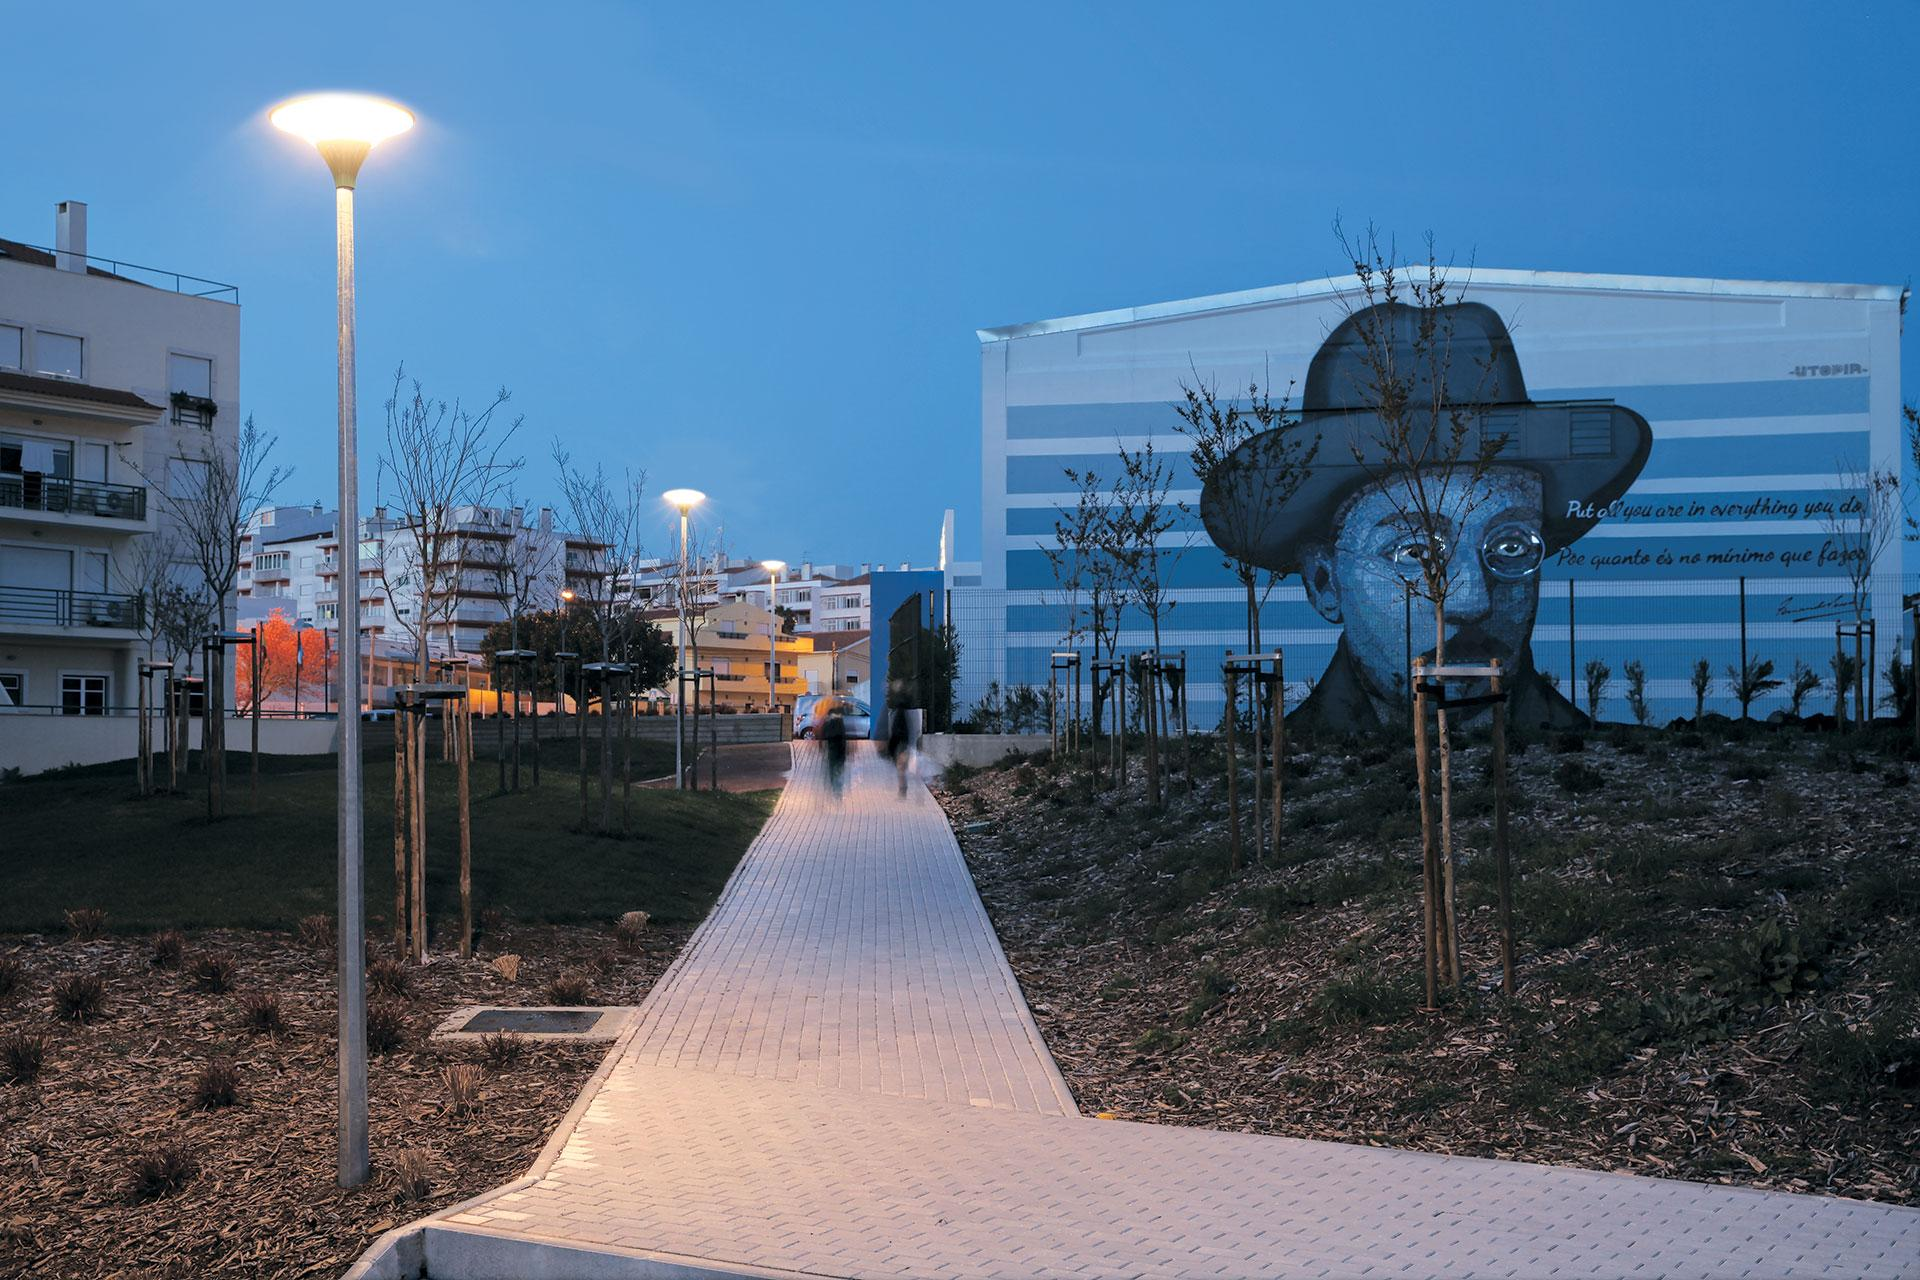 Zela LED luminaire creates warm nocturnal environments so people want to spend time outside at night